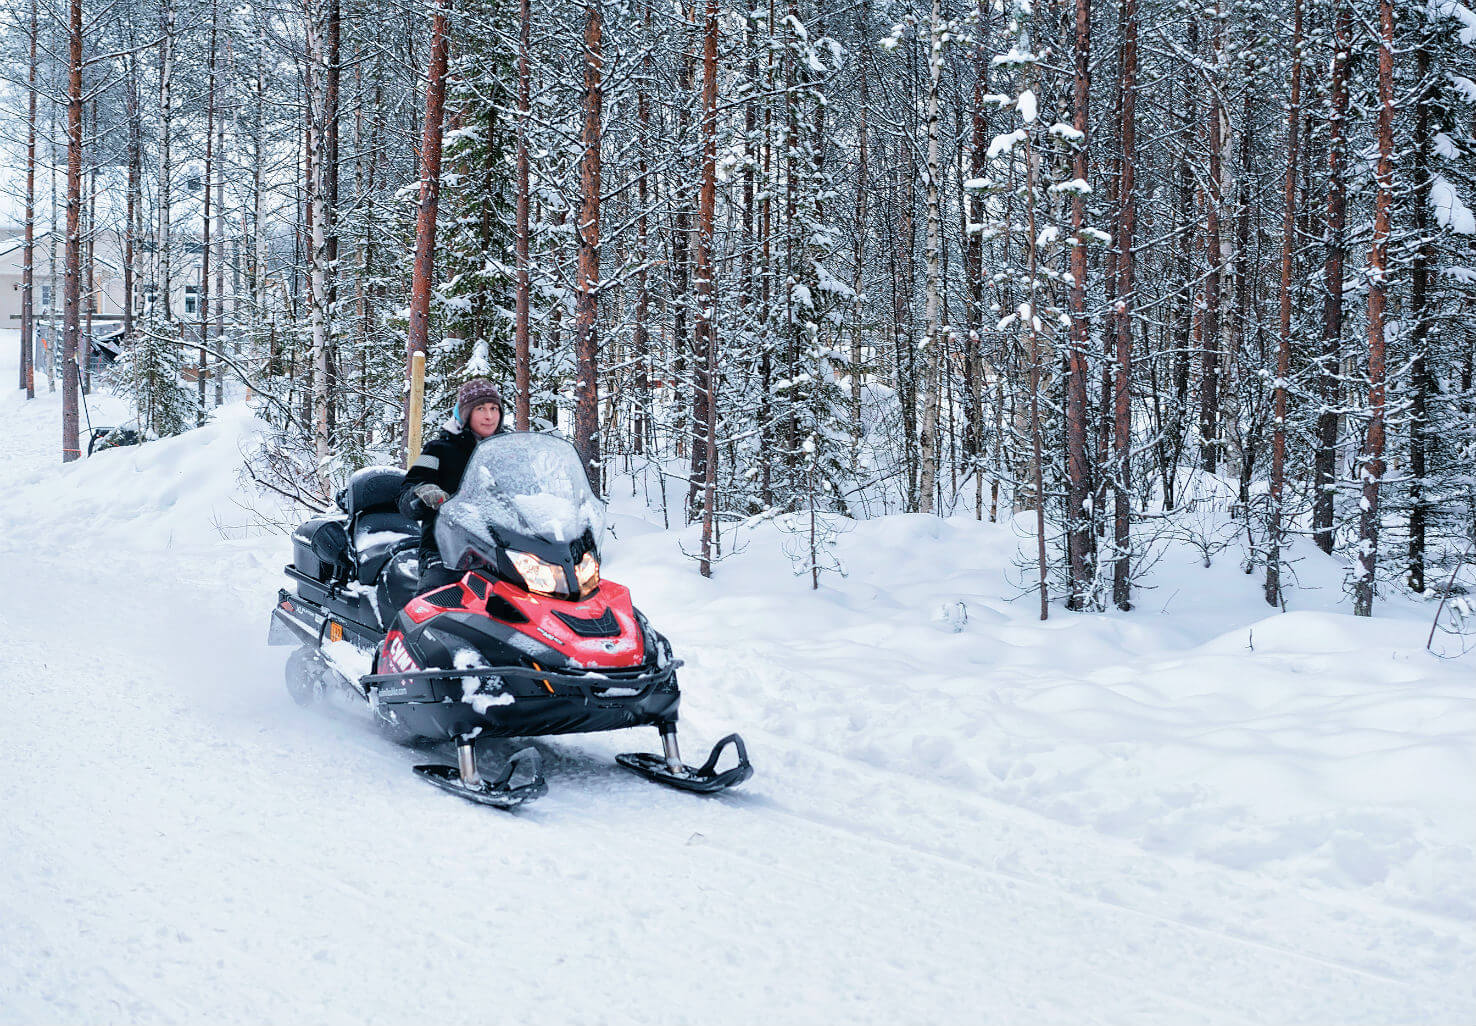 Man riding snowmobile across trail through forest